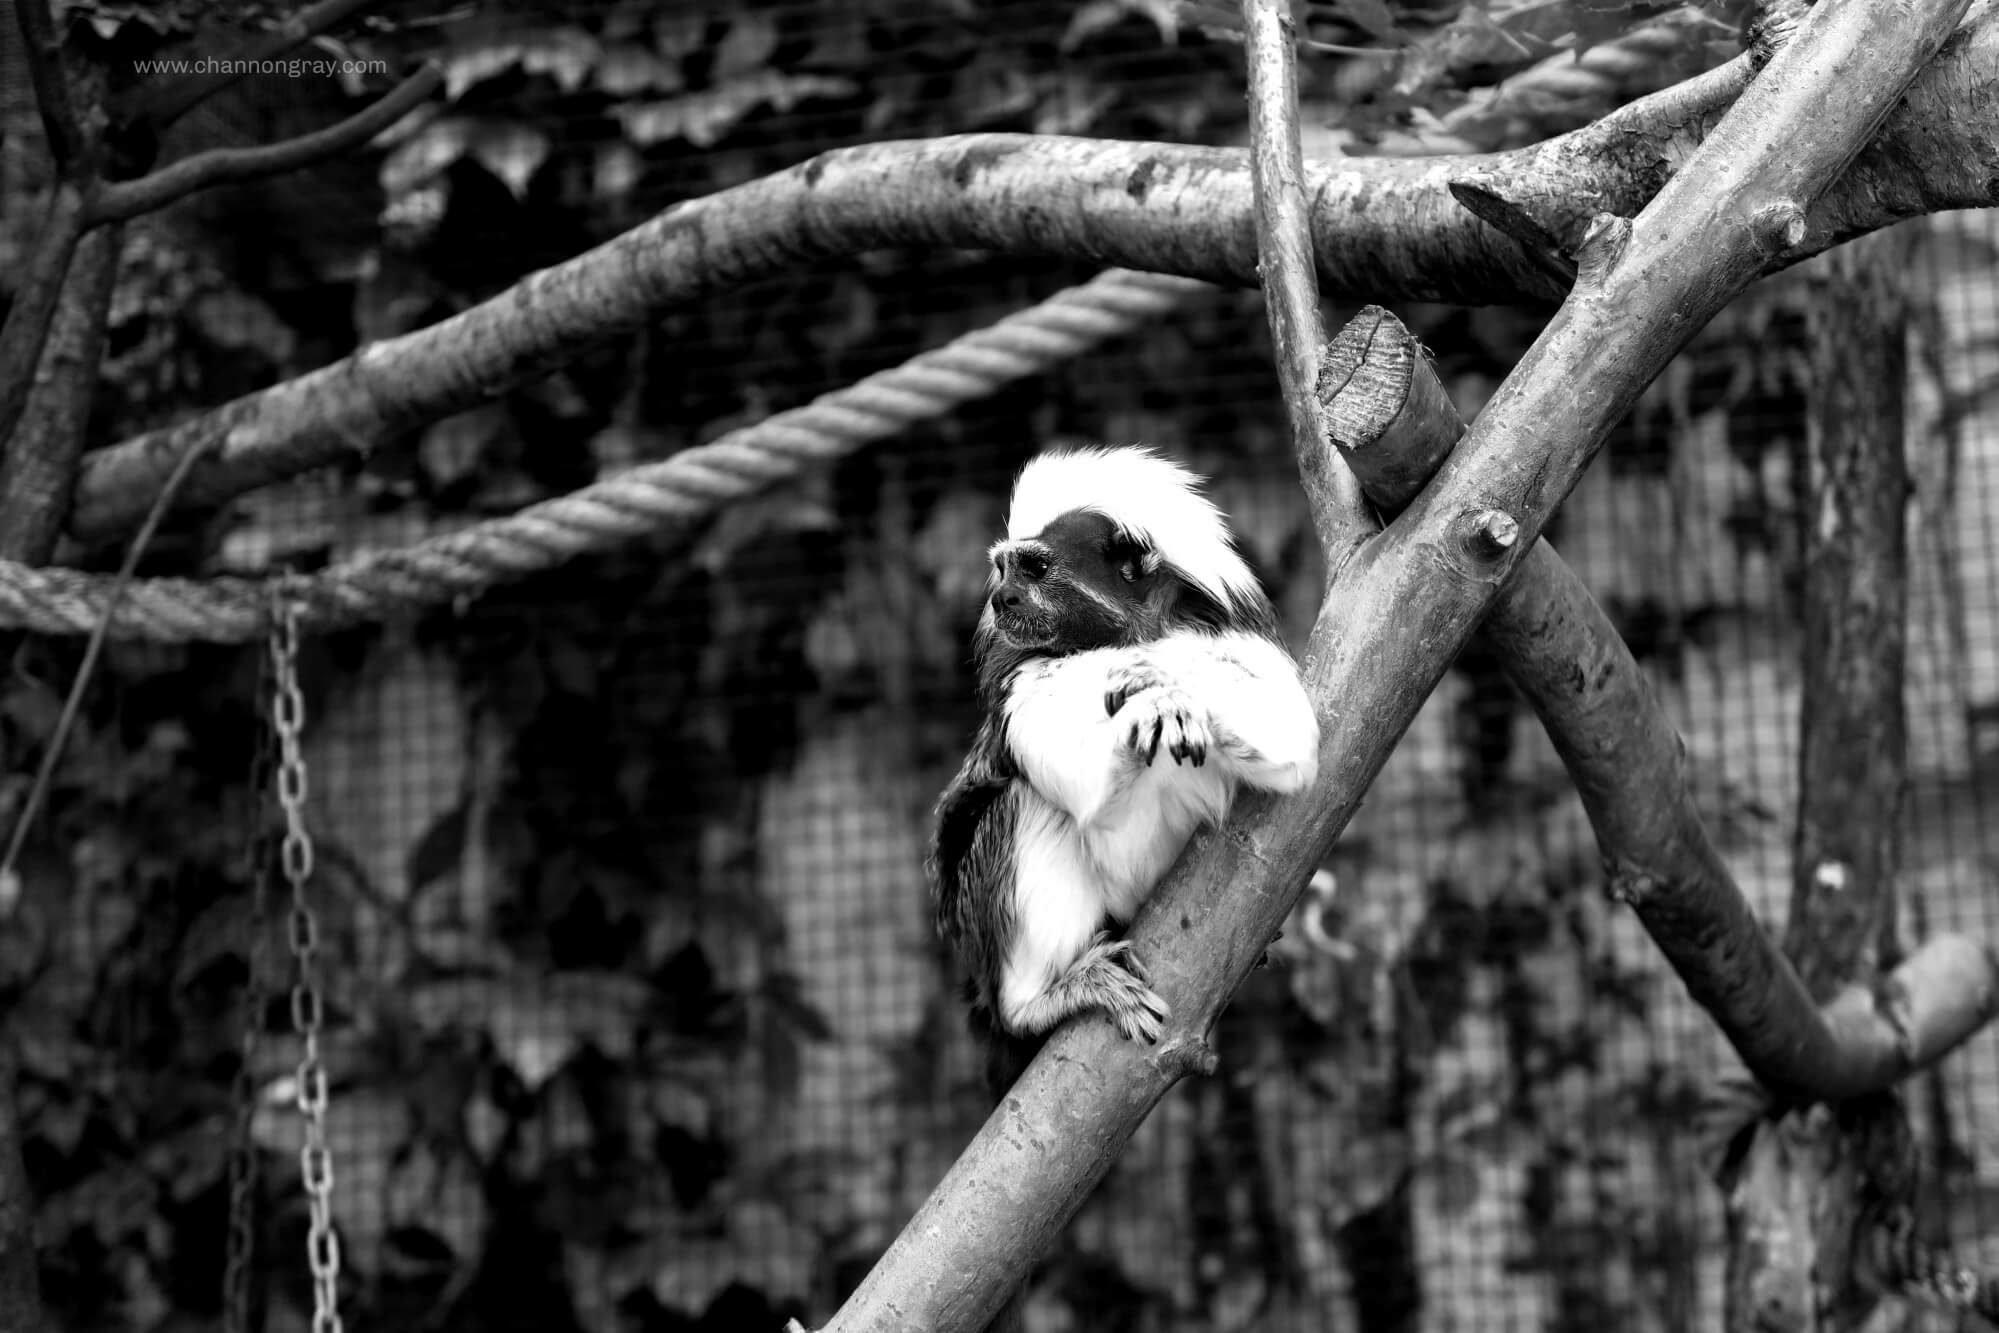 Monkey at ZooParc Du Beauval